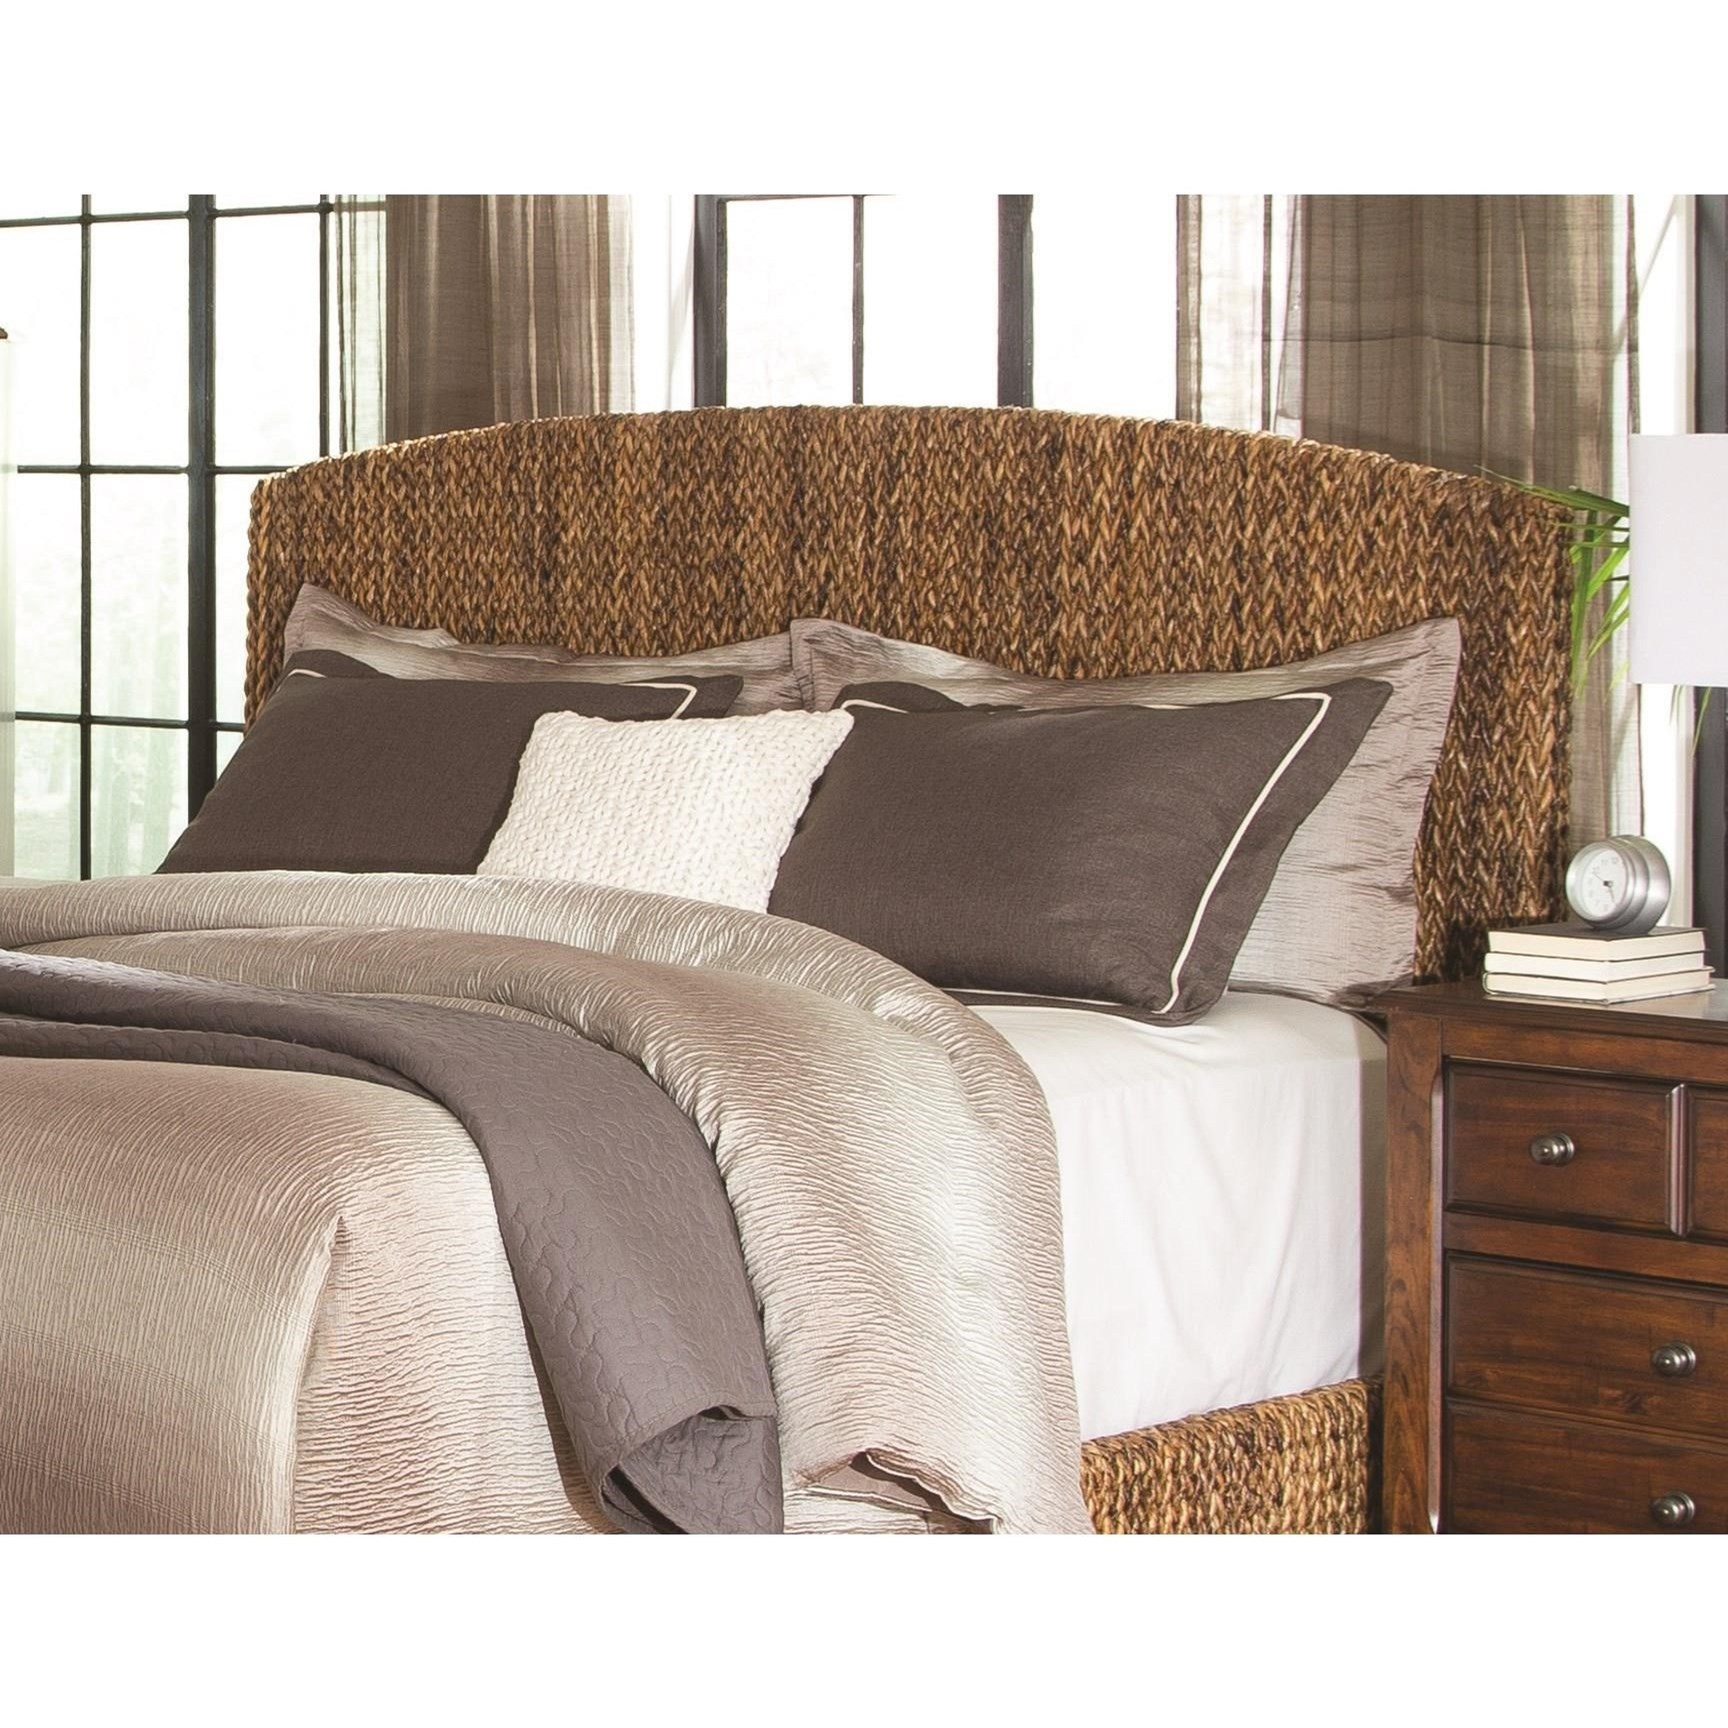 Laughton Cal King Headboard by Coaster at Northeast Factory Direct